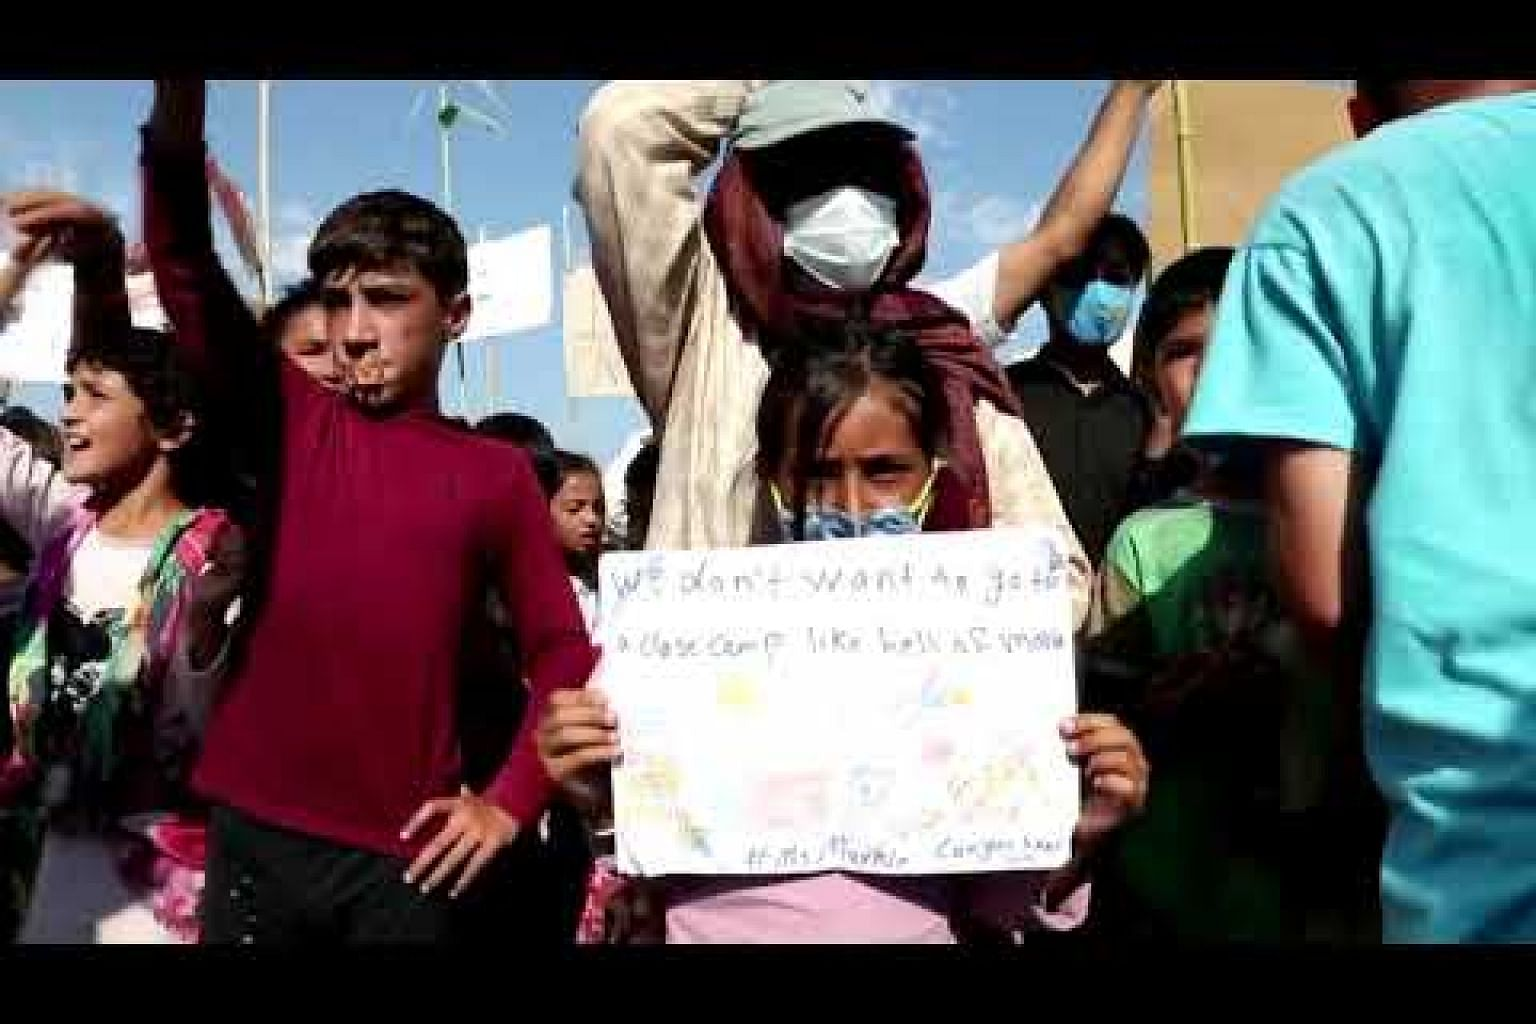 Migrants protest in Lesbos for second day